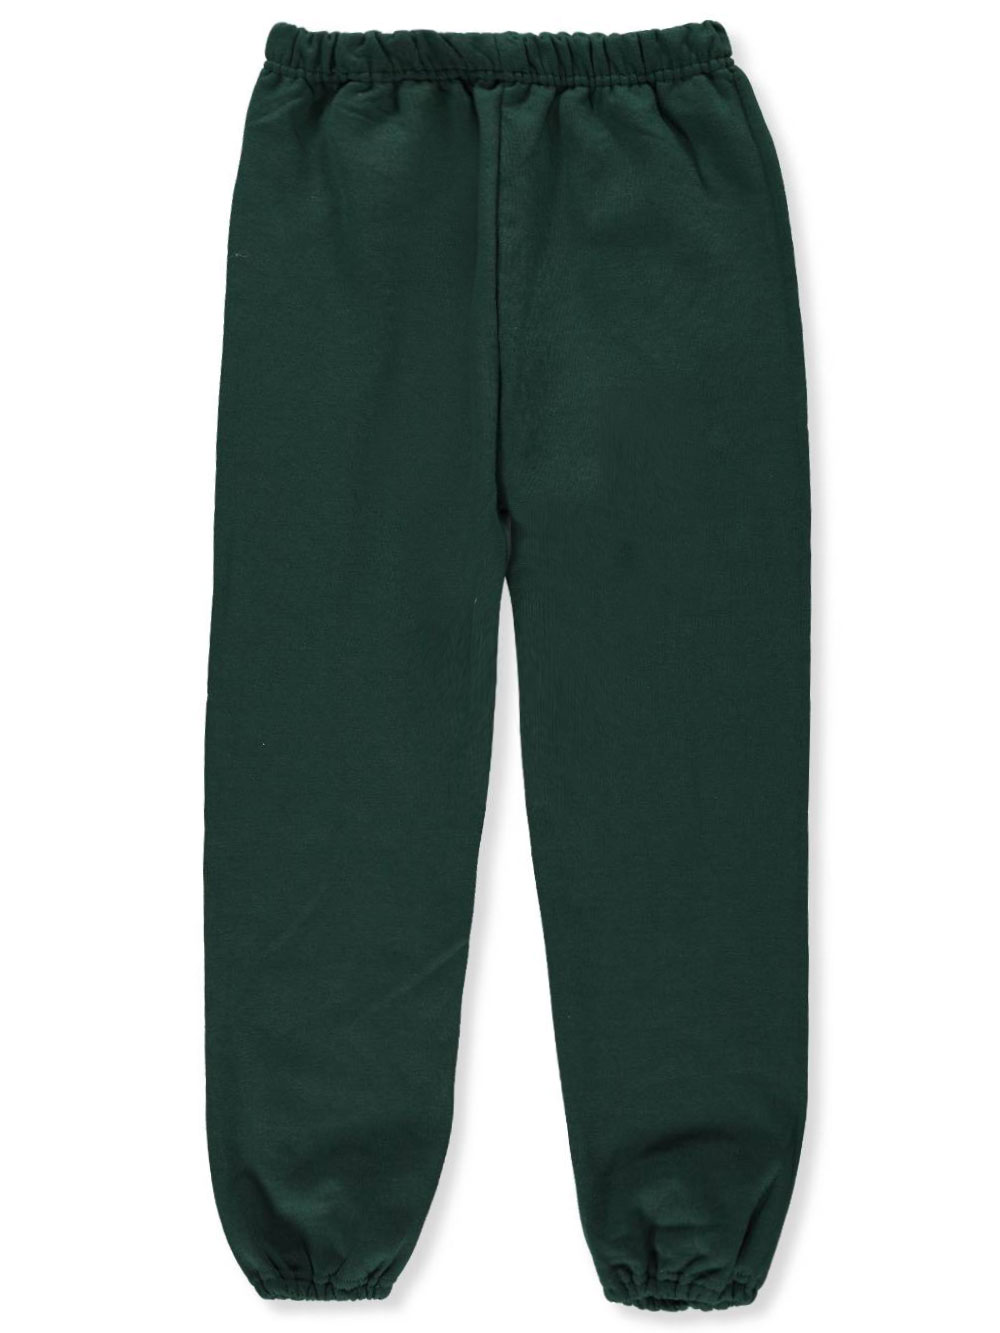 Jerzees Boys' Fleece Joggers (Youth Sizes S - XL)